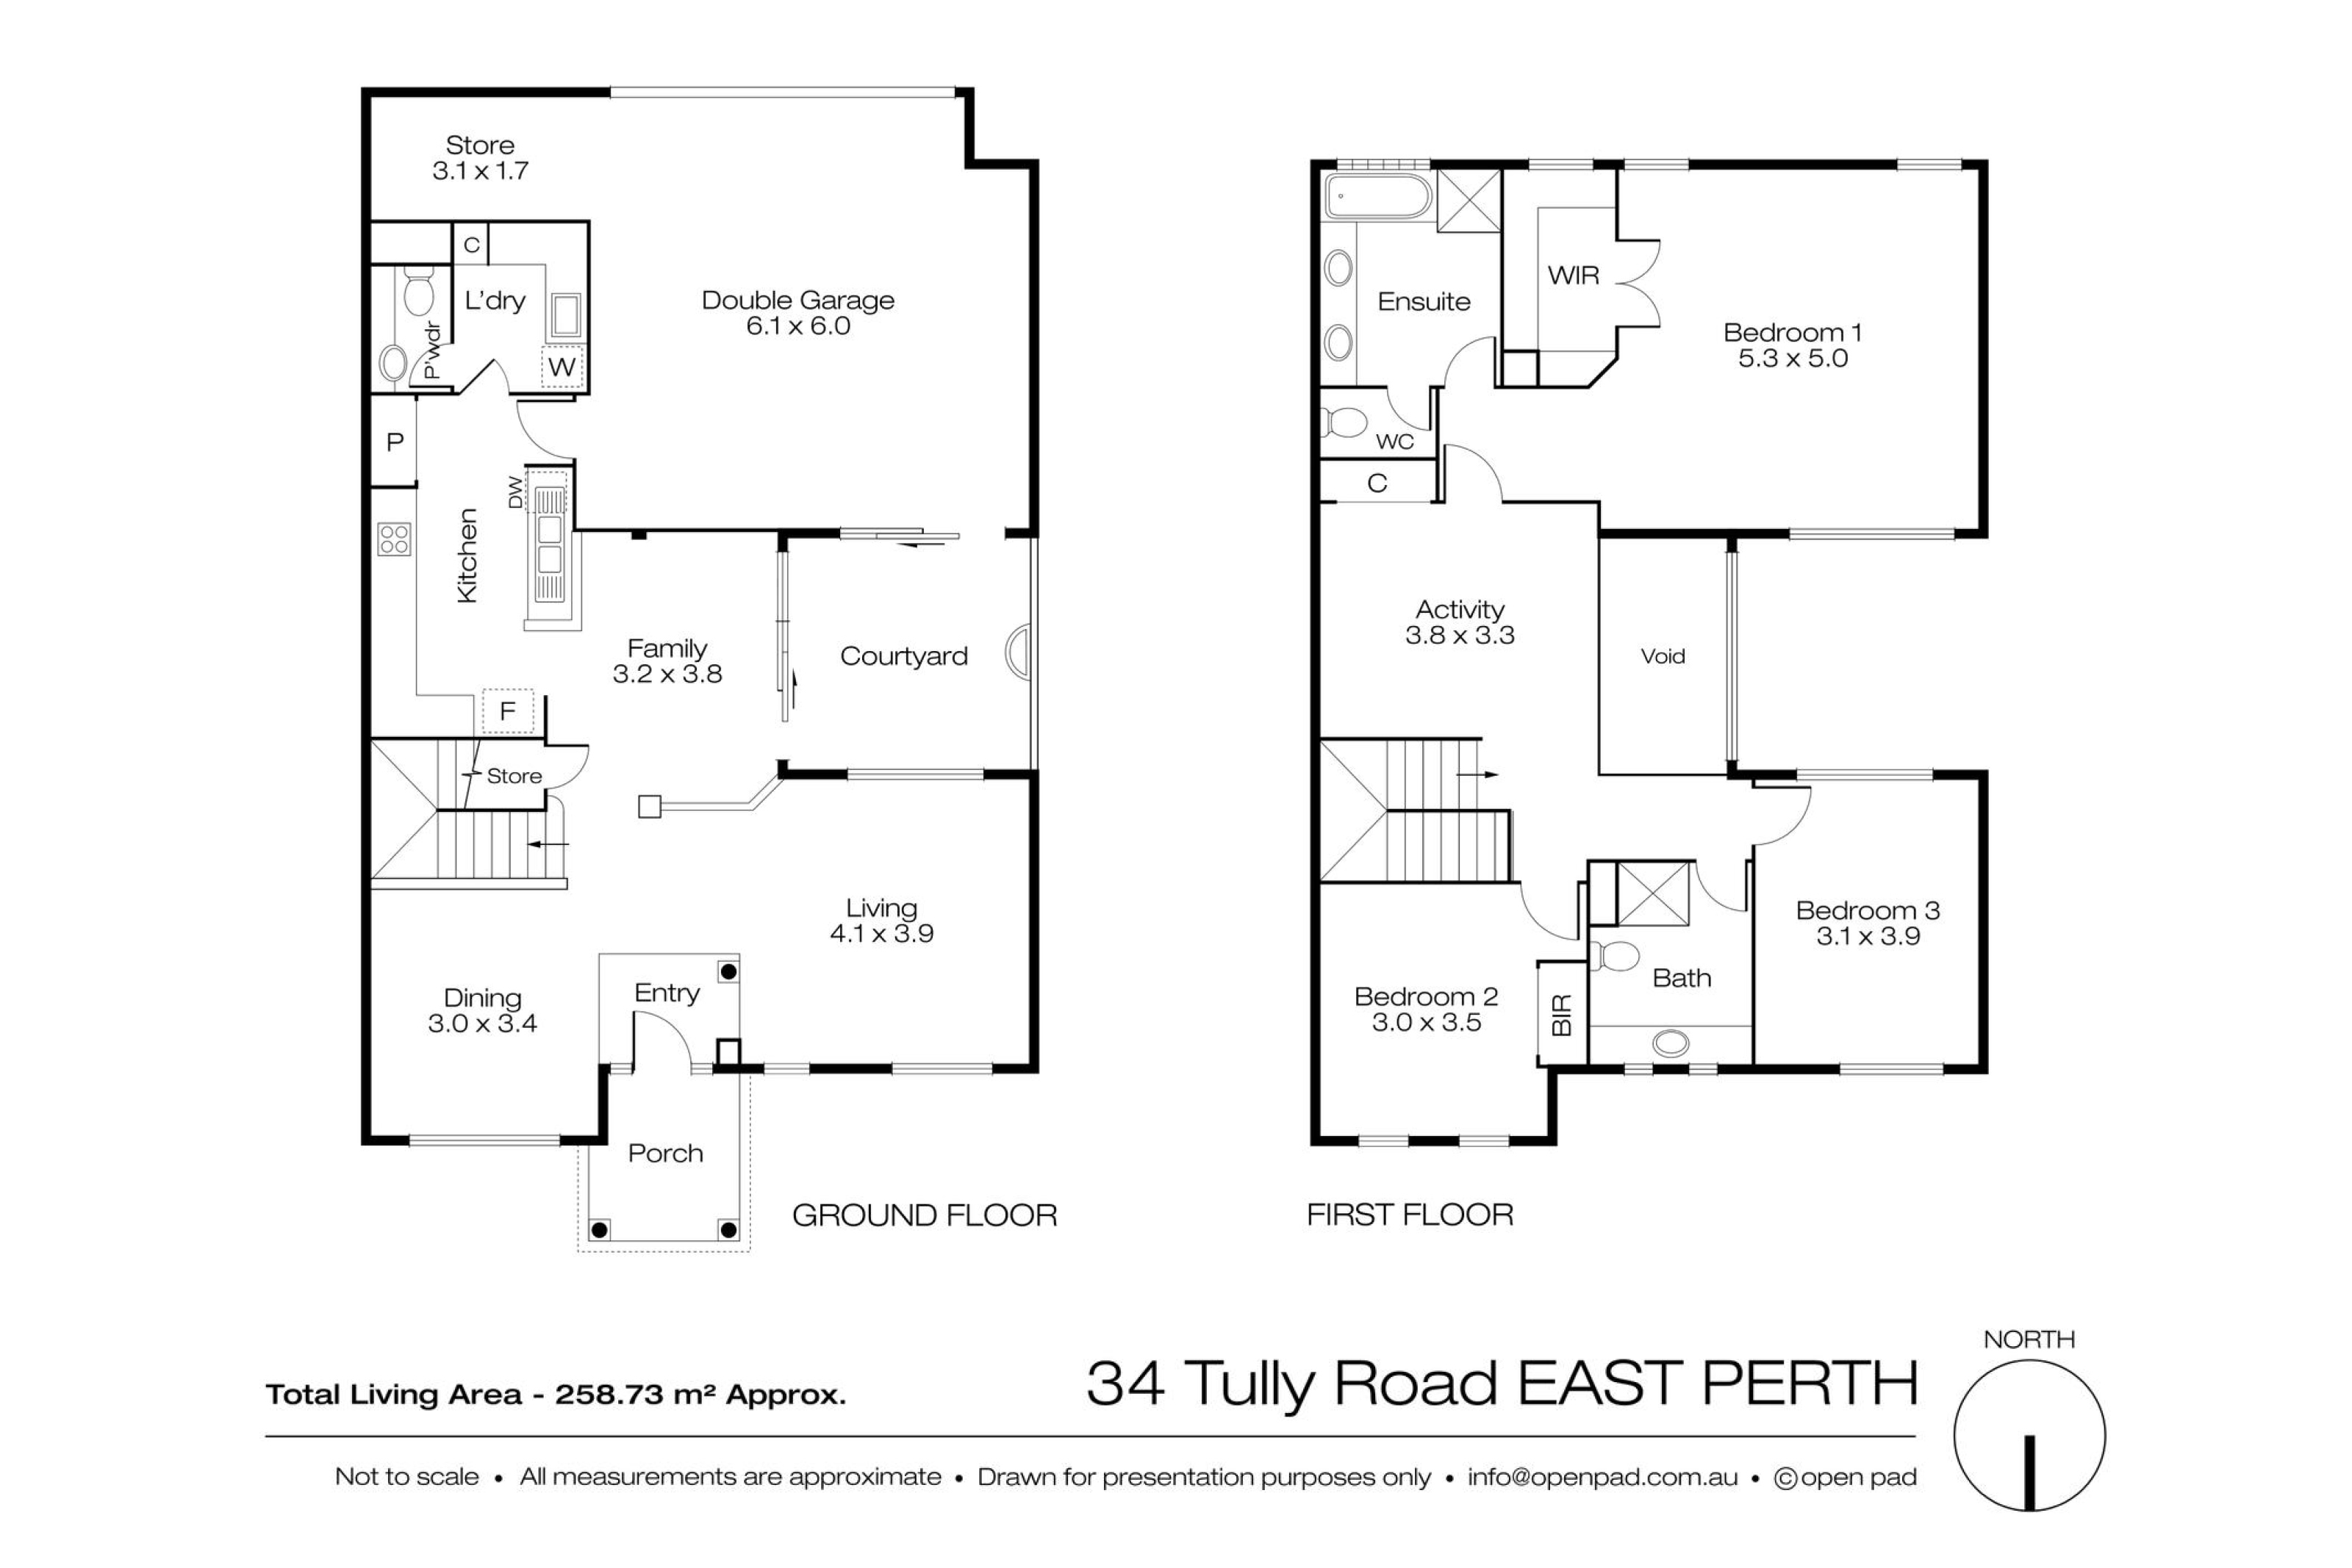 34 Tully Road East Perth Map